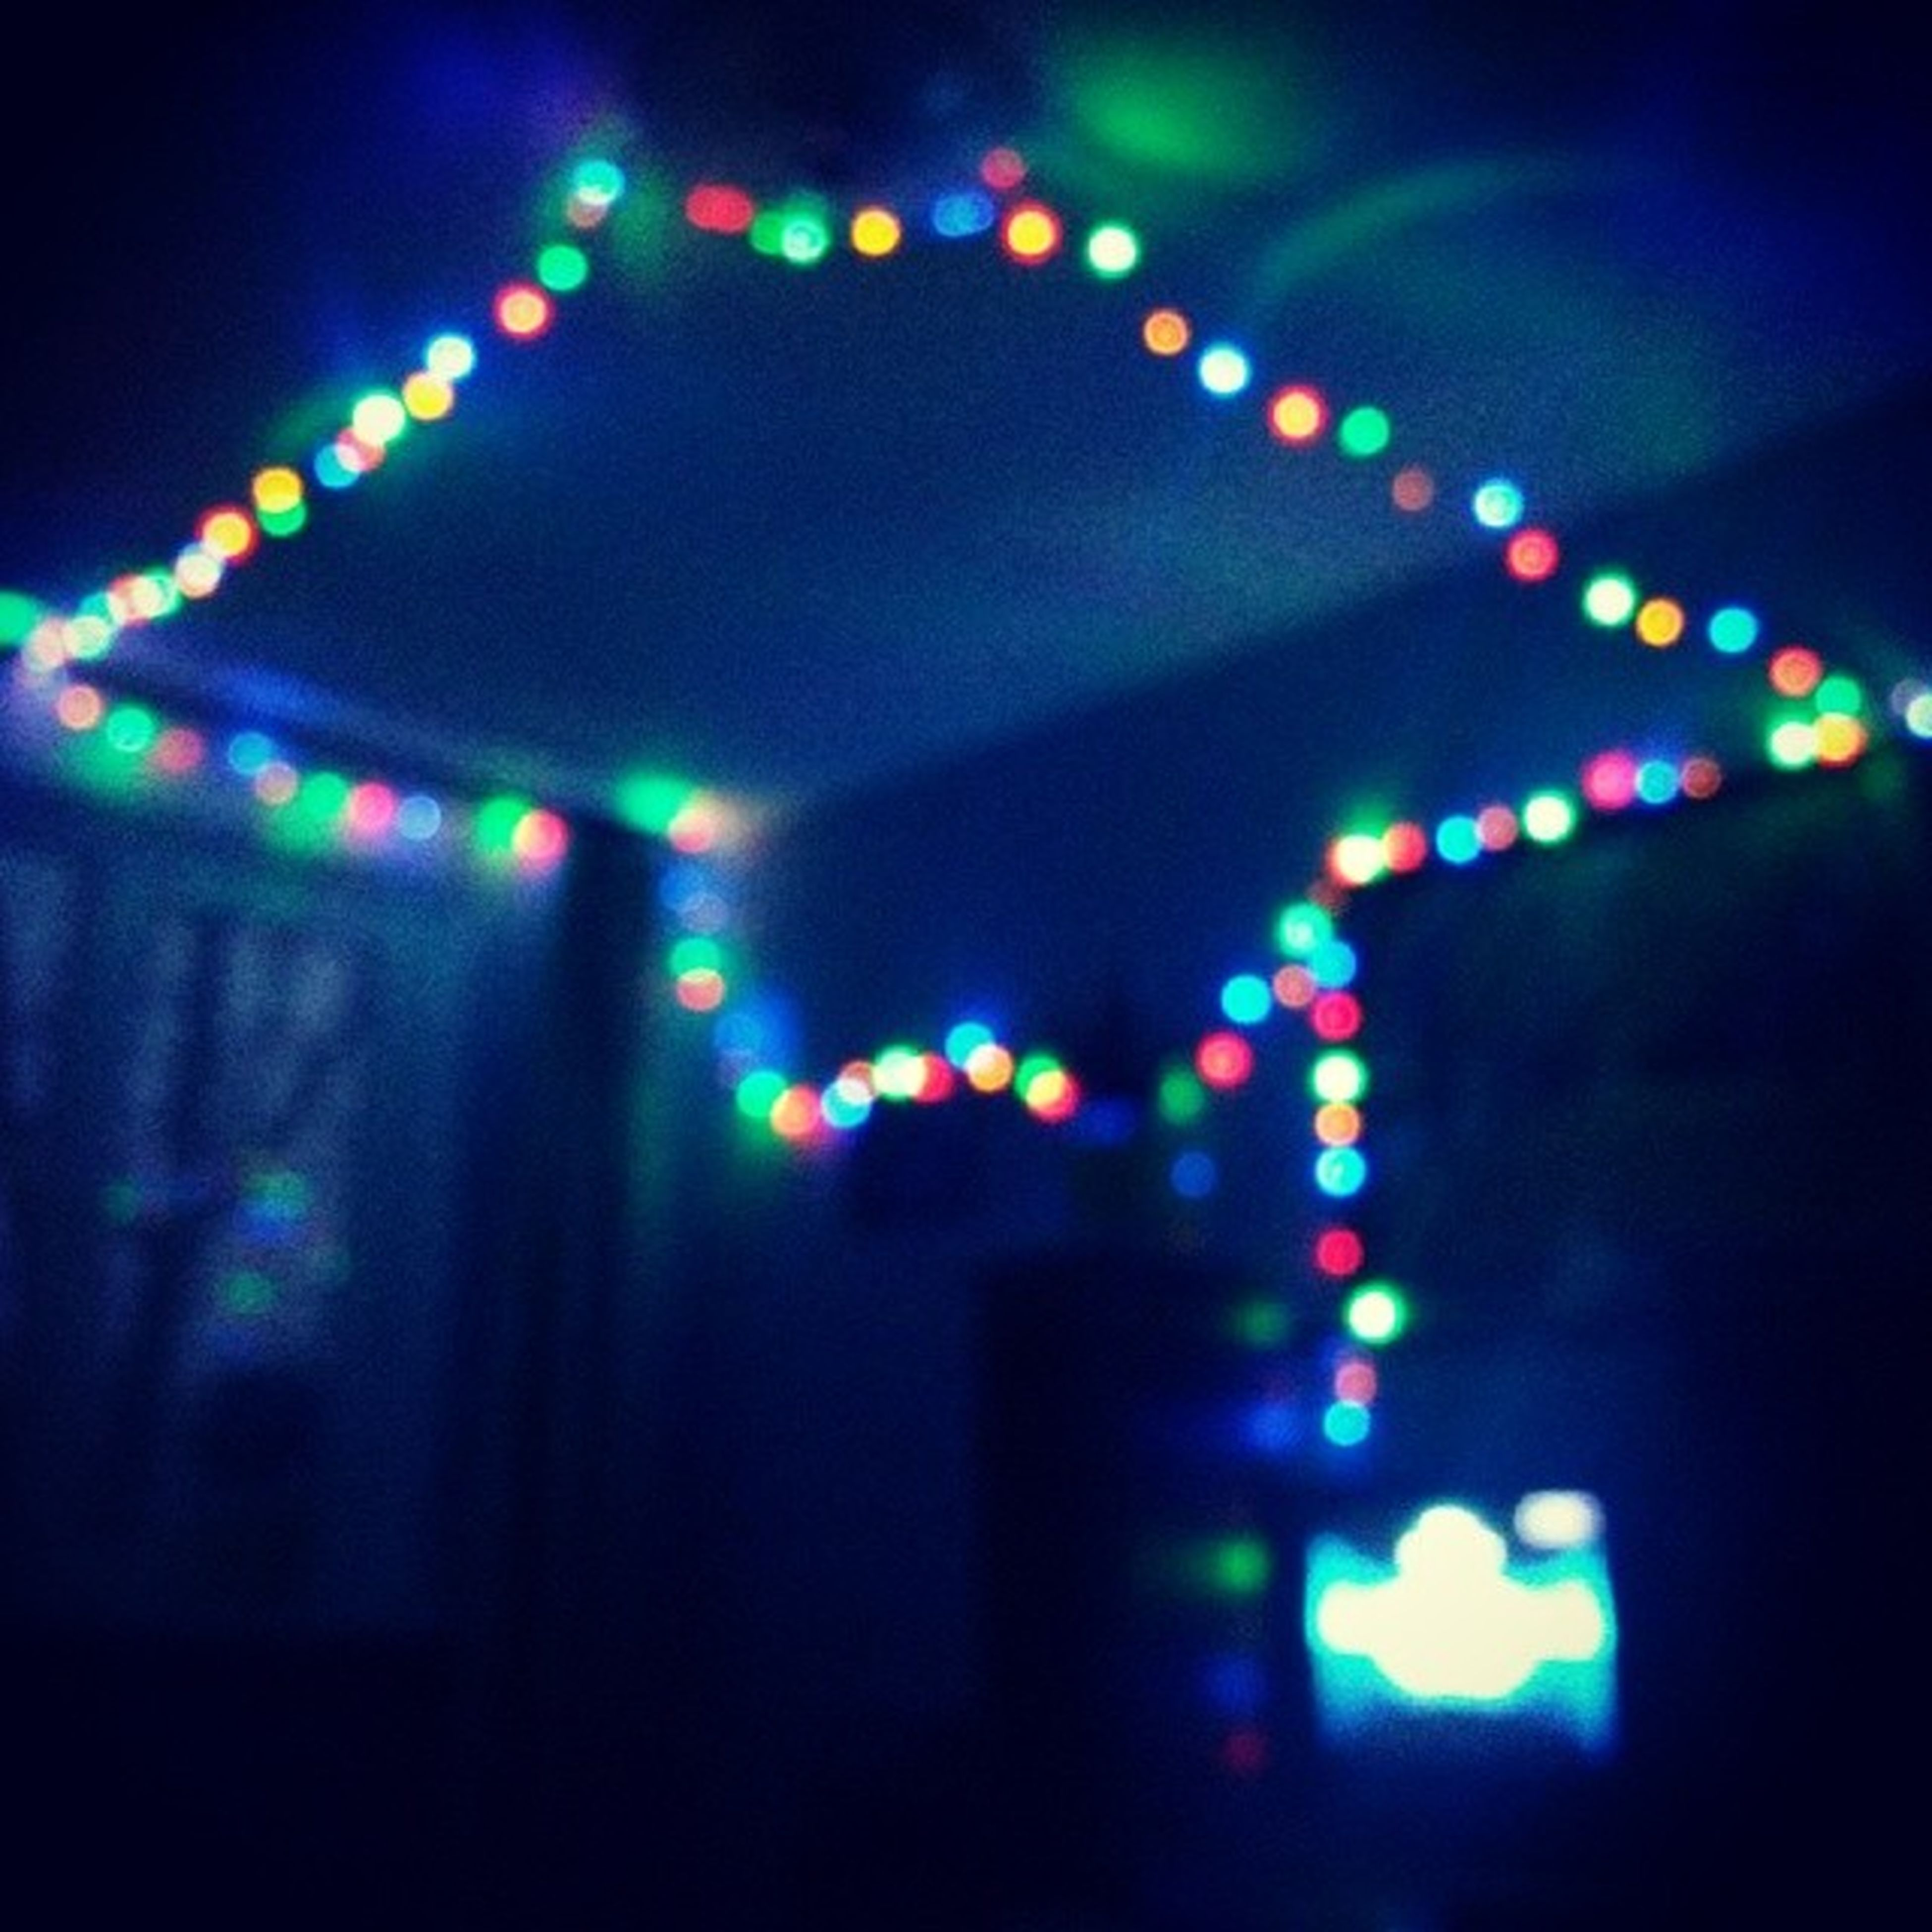 illuminated, lighting equipment, night, indoors, decoration, multi colored, glowing, light - natural phenomenon, electric light, defocused, light, low angle view, electricity, pattern, architecture, ceiling, built structure, celebration, hanging, no people